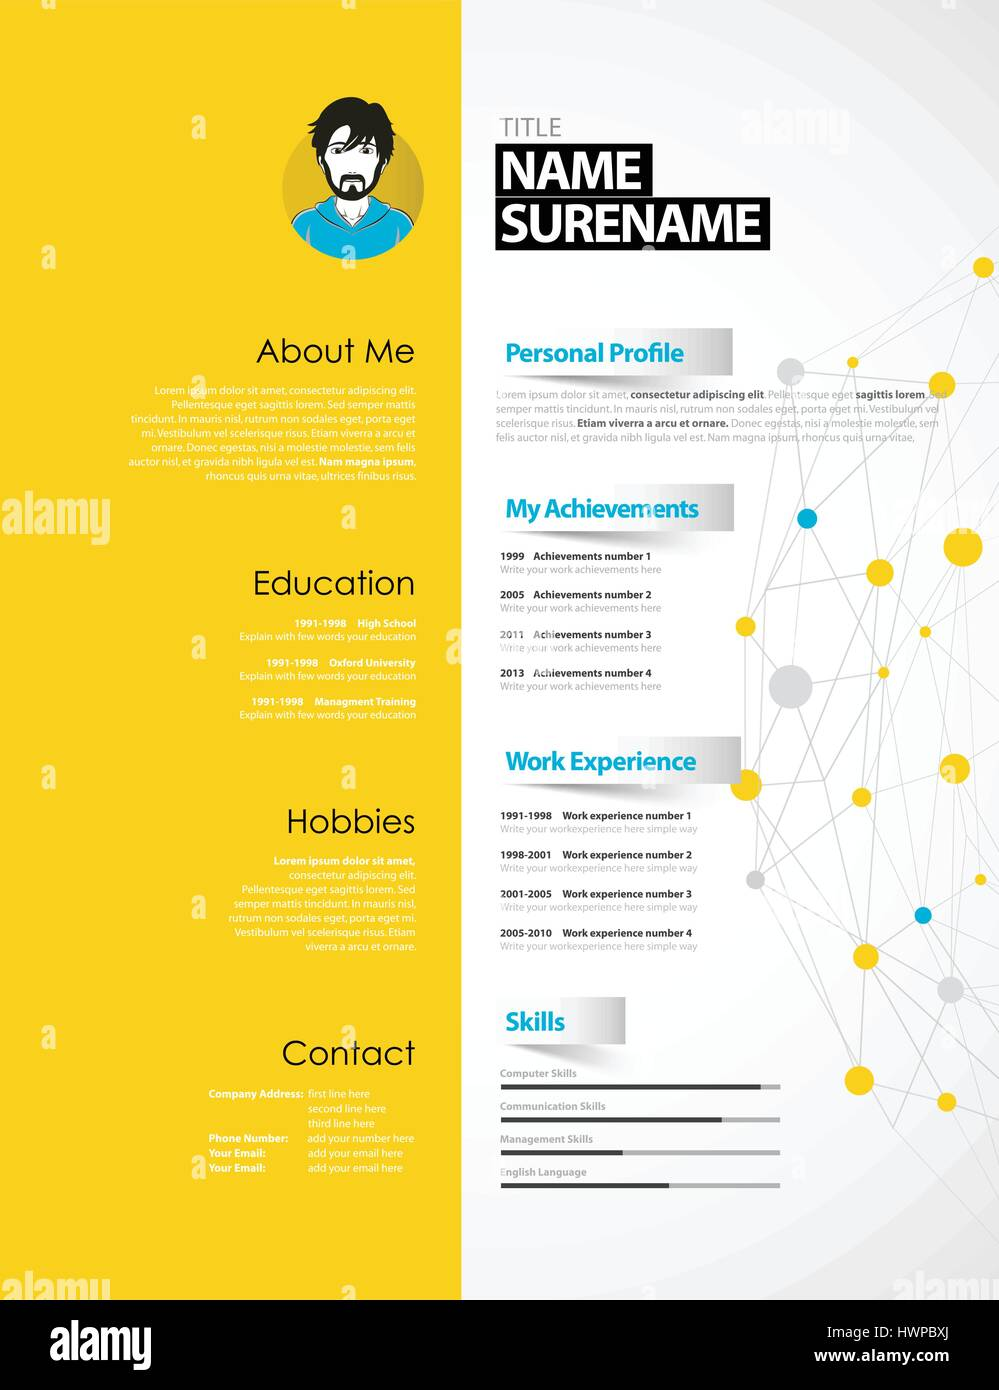 creative cv template with yellow paper stripe stock vector art - Creative Resume Design Templates